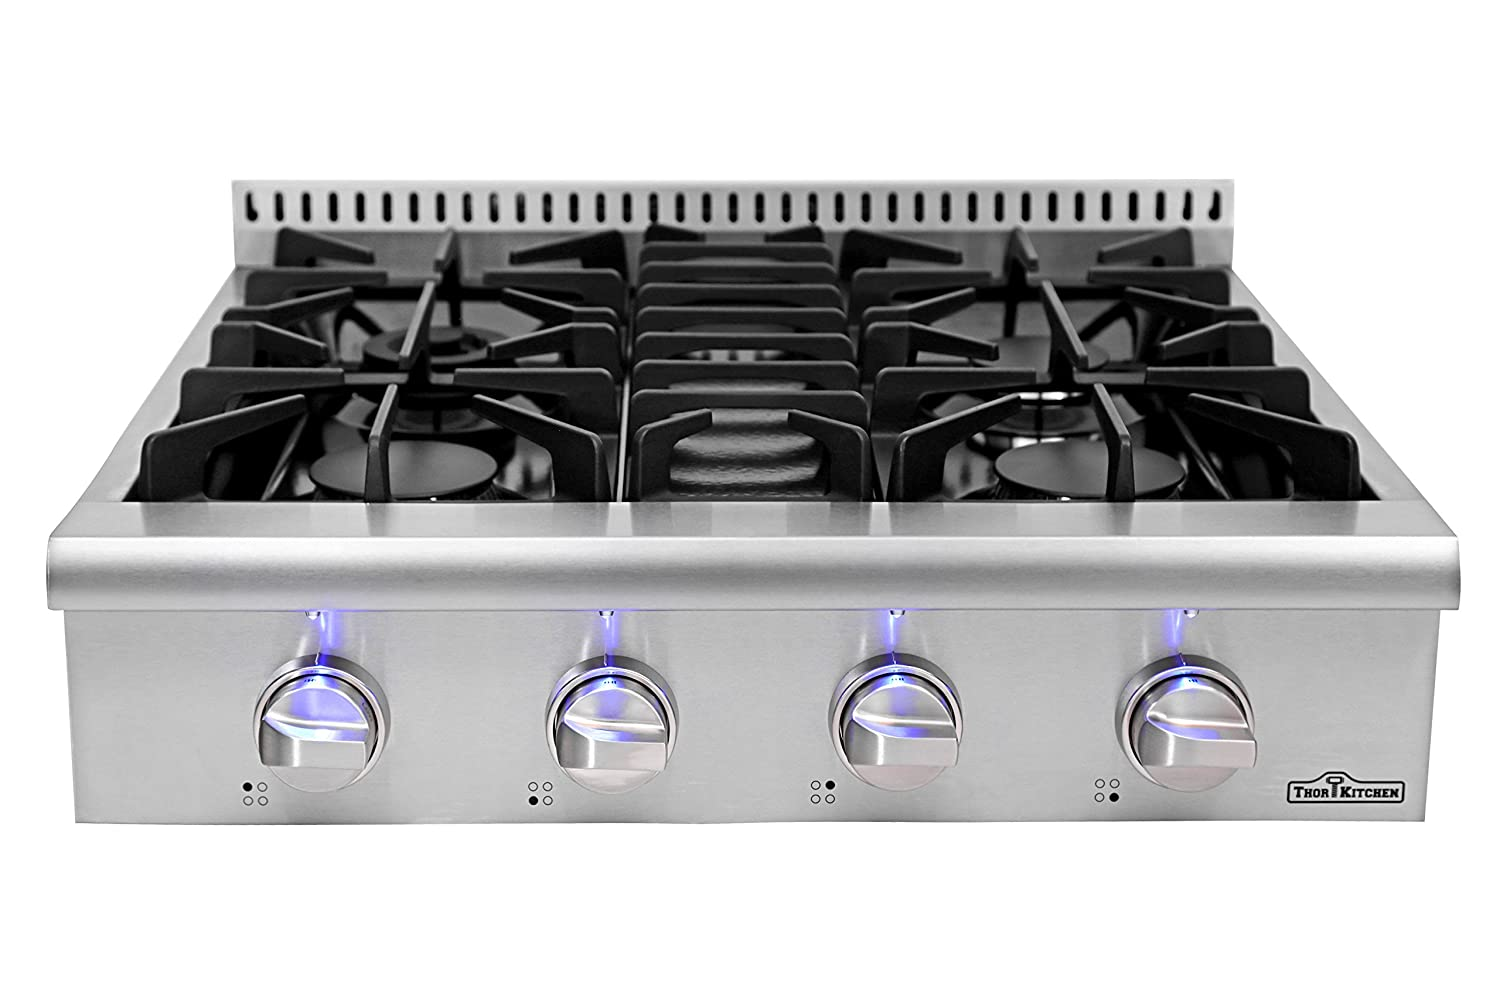 Amazon.com: Kitchen & vida pro-style Gas rangetop con 4 ...